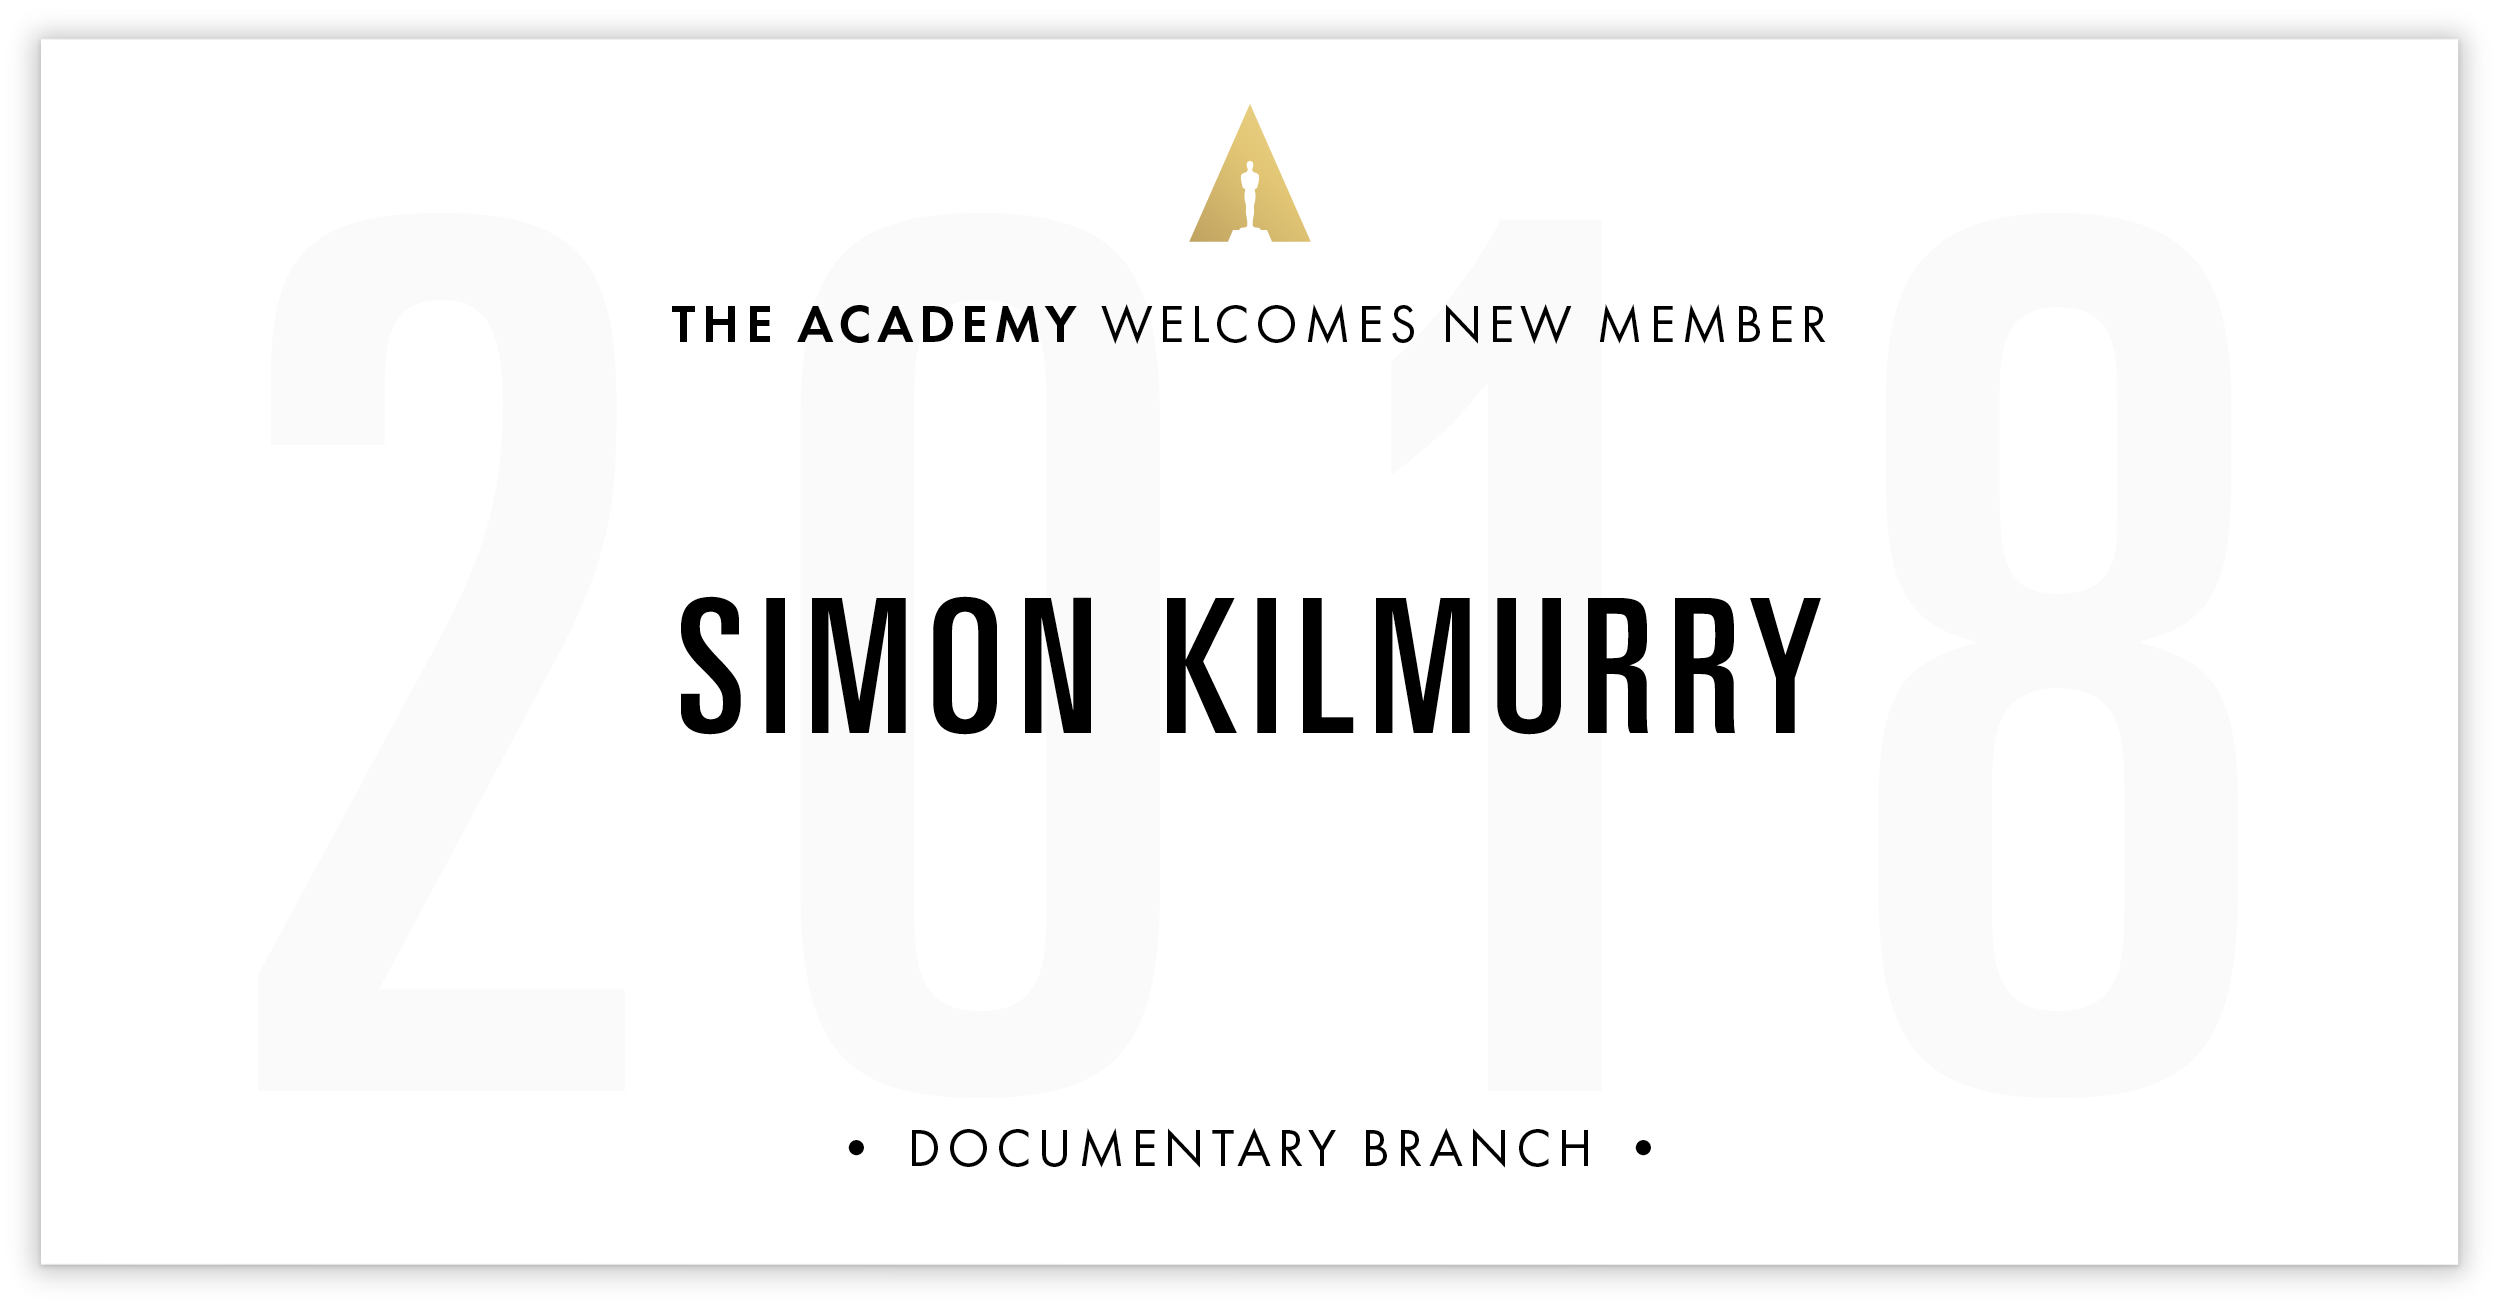 Simon Kilmurry is invited!